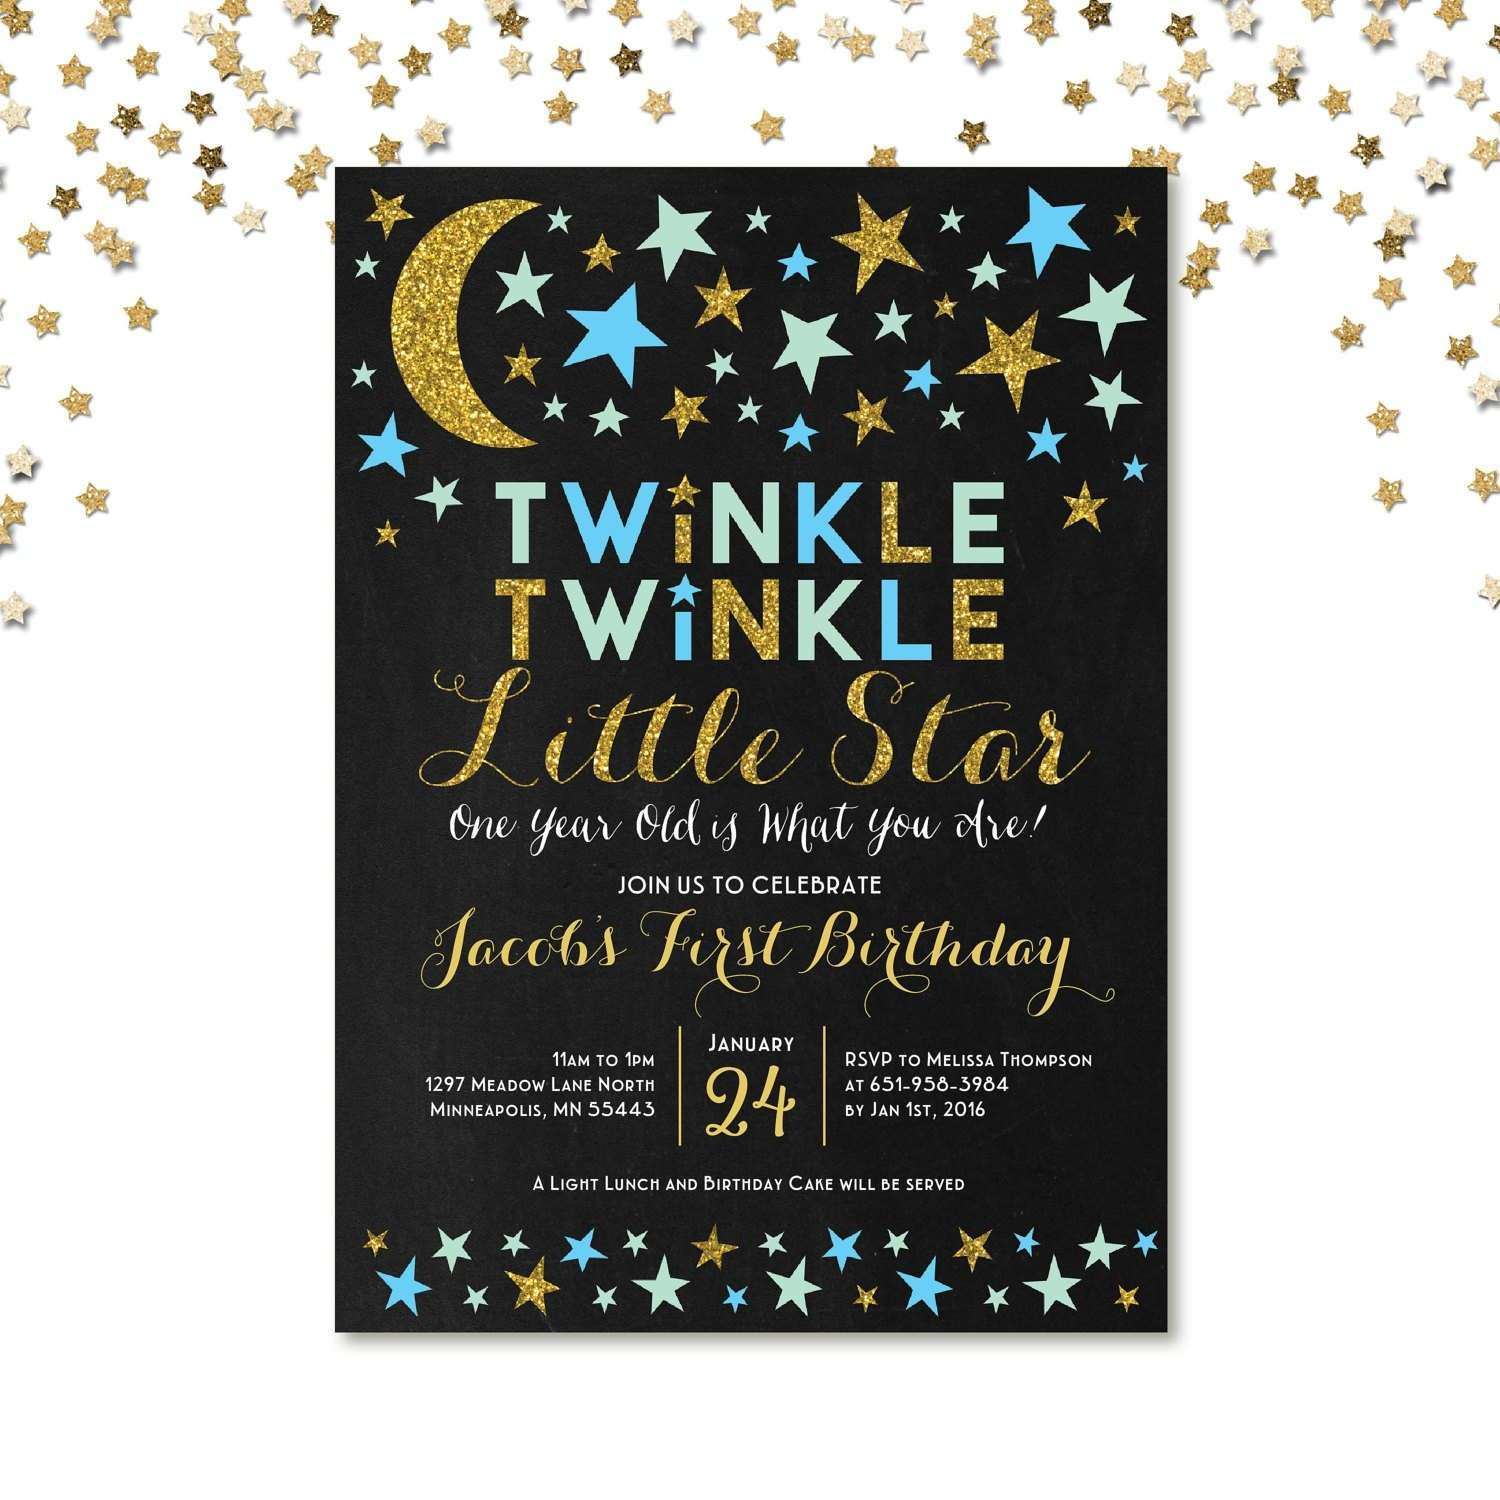 Twinkle Twinkle Little Star First Birthday Invitation, Blue And Gold - Free Printable Twinkle Twinkle Little Star Baby Shower Invitations